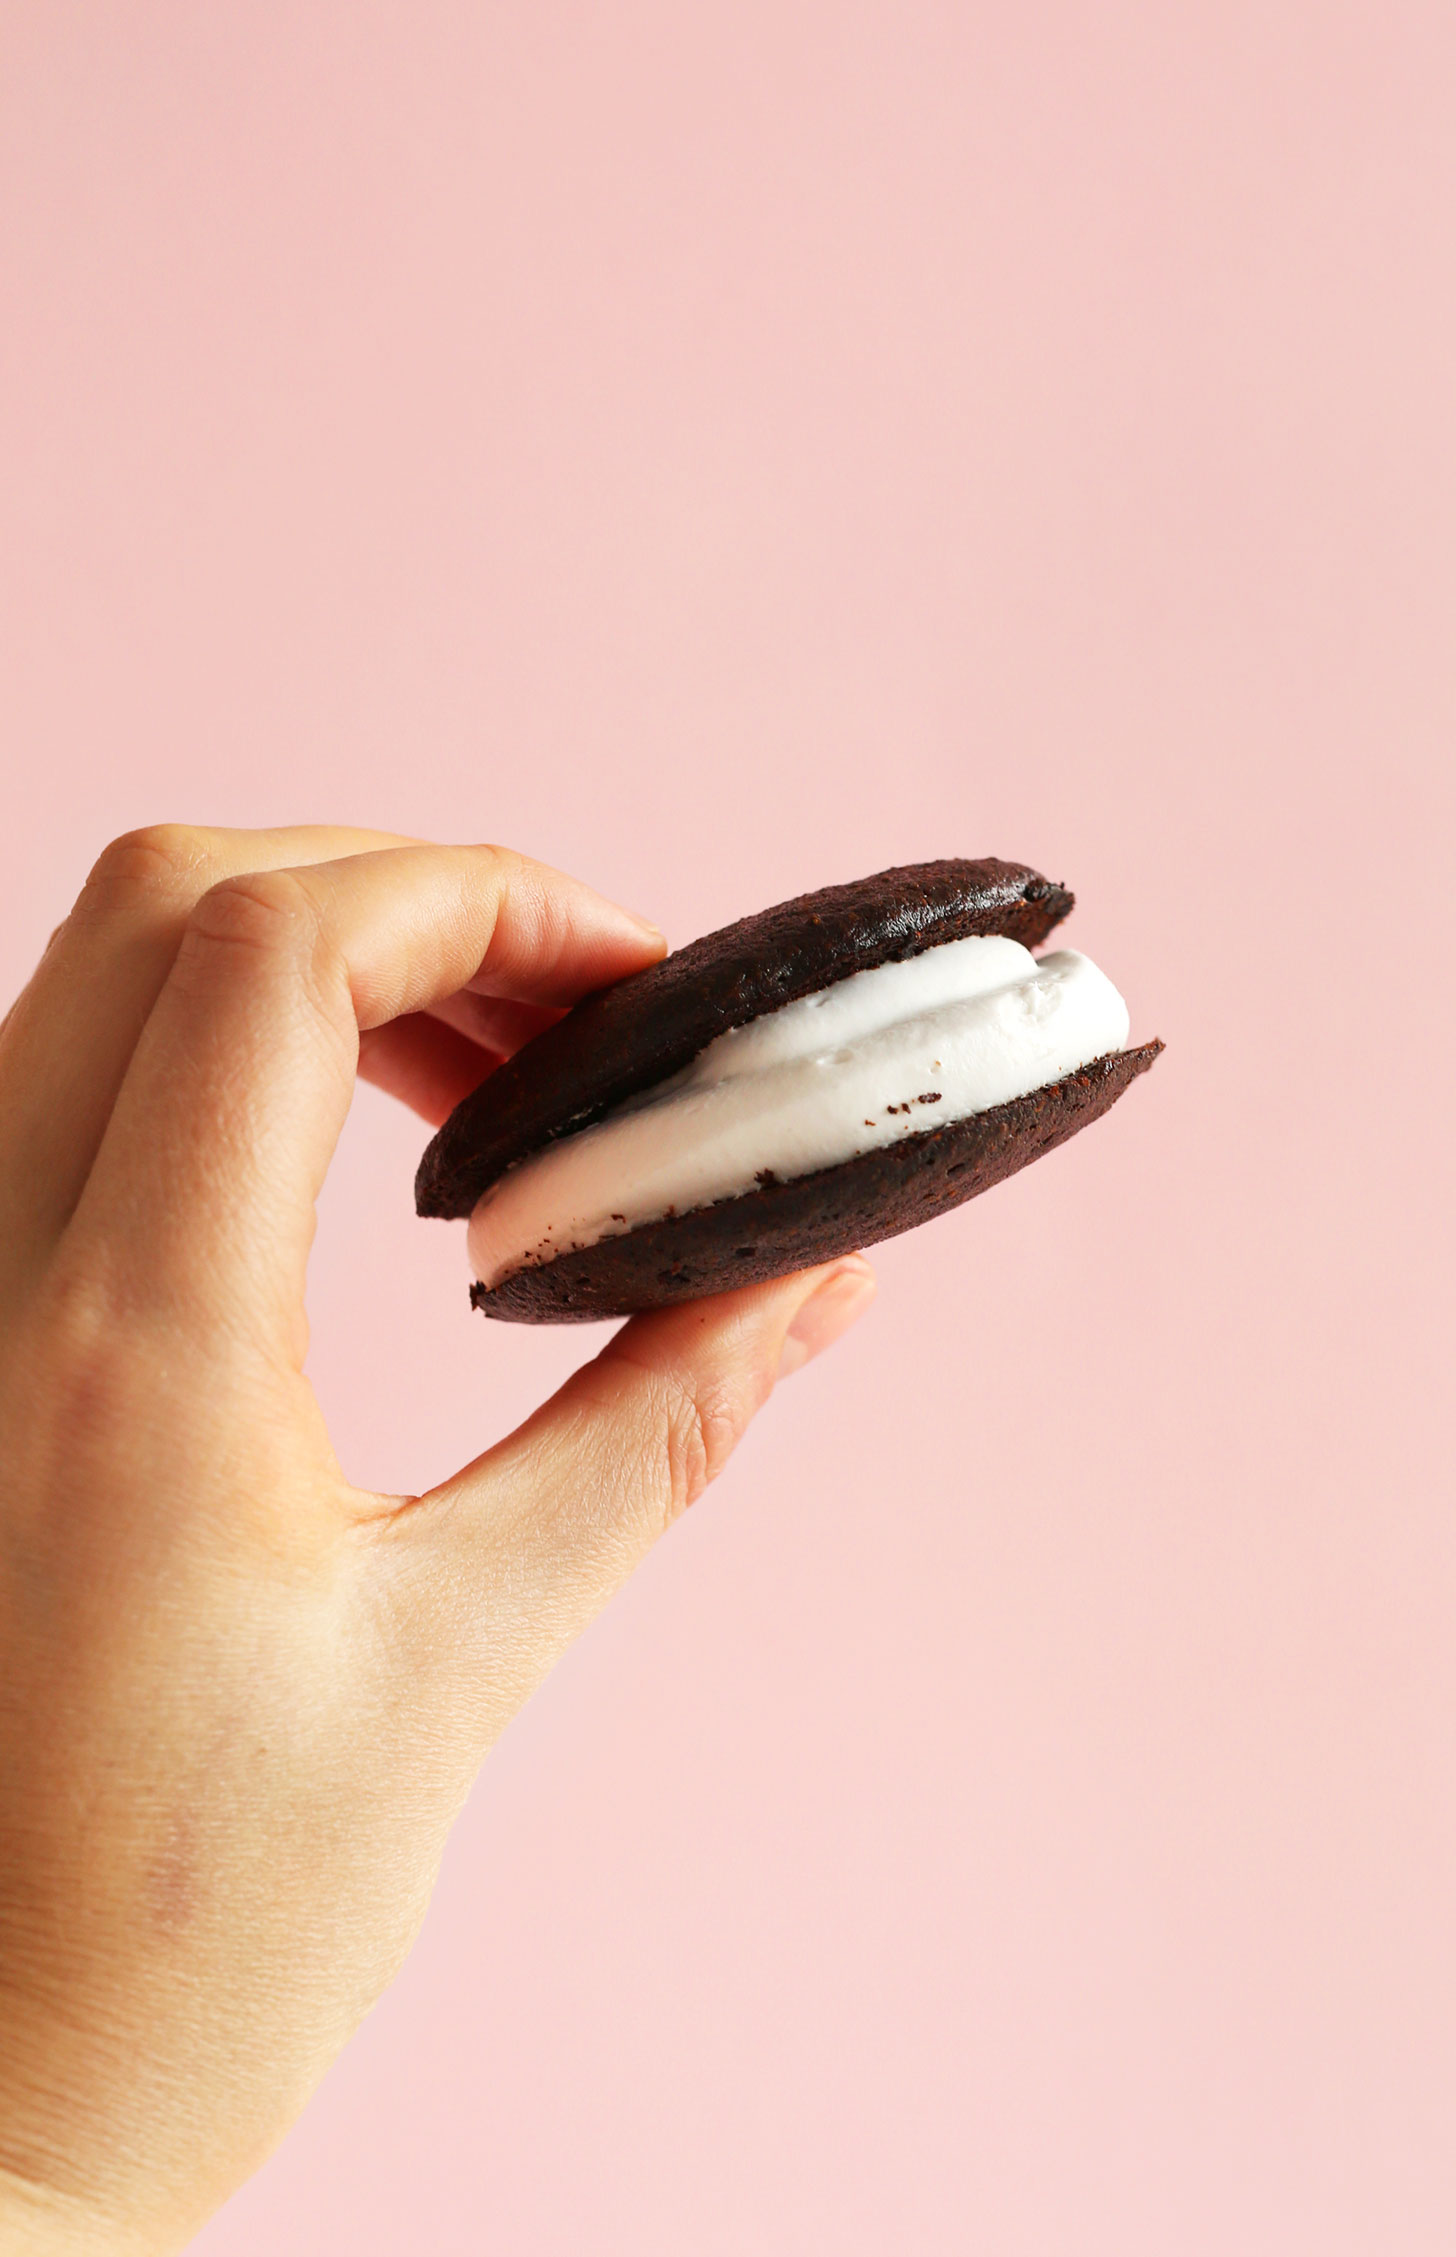 Holding up one of our simple Vegan Whoopie Pies